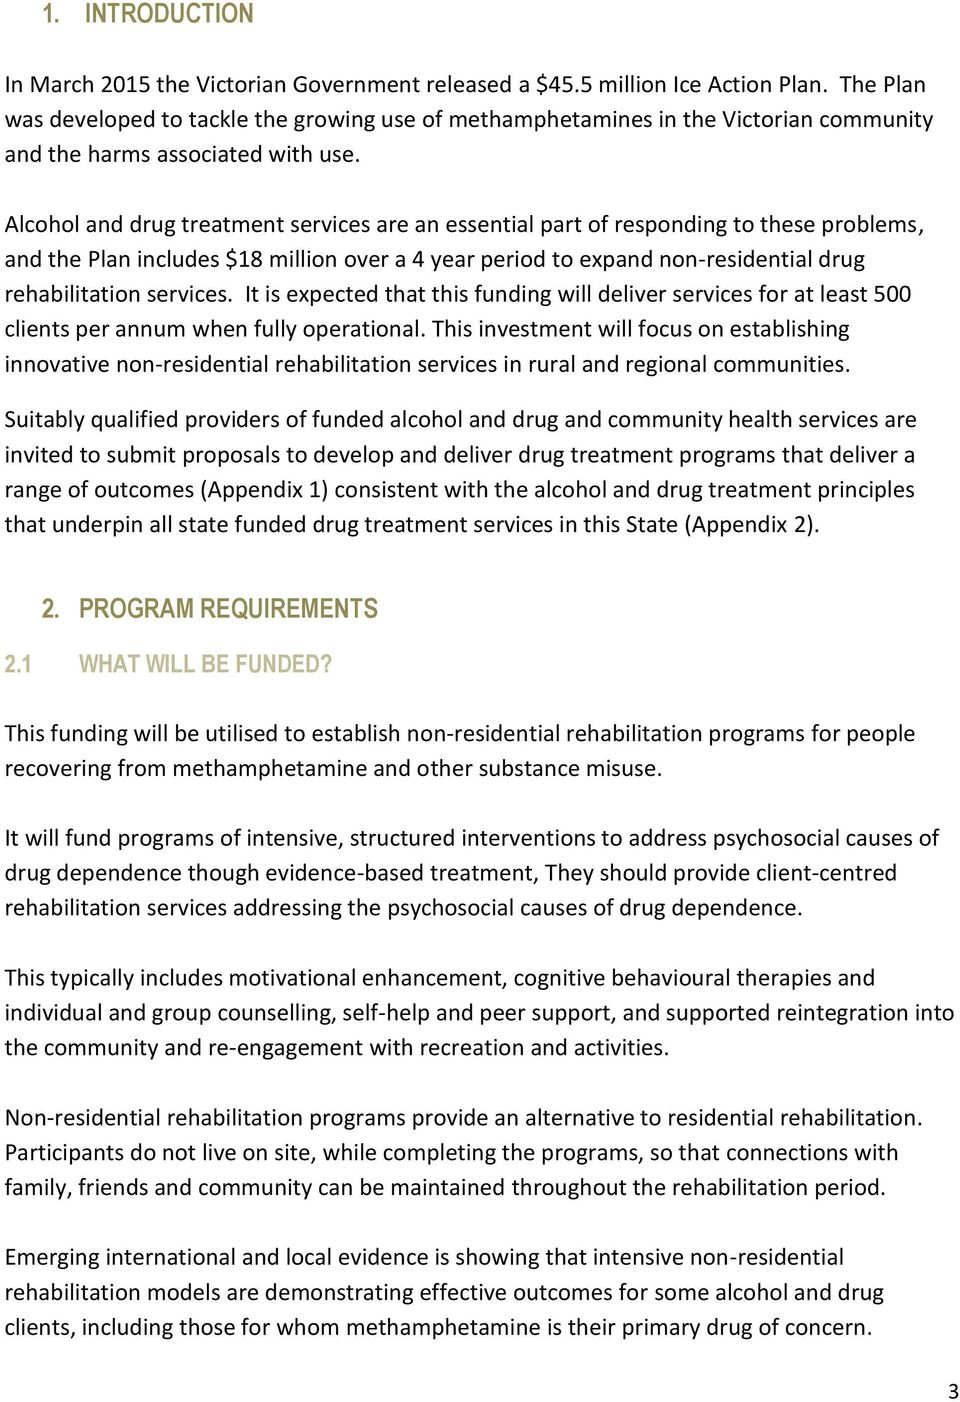 Alcohol and drug treatment services are an essential part of responding to these problems, and the Plan includes $18 million over a 4 year period to expand non-residential drug rehabilitation